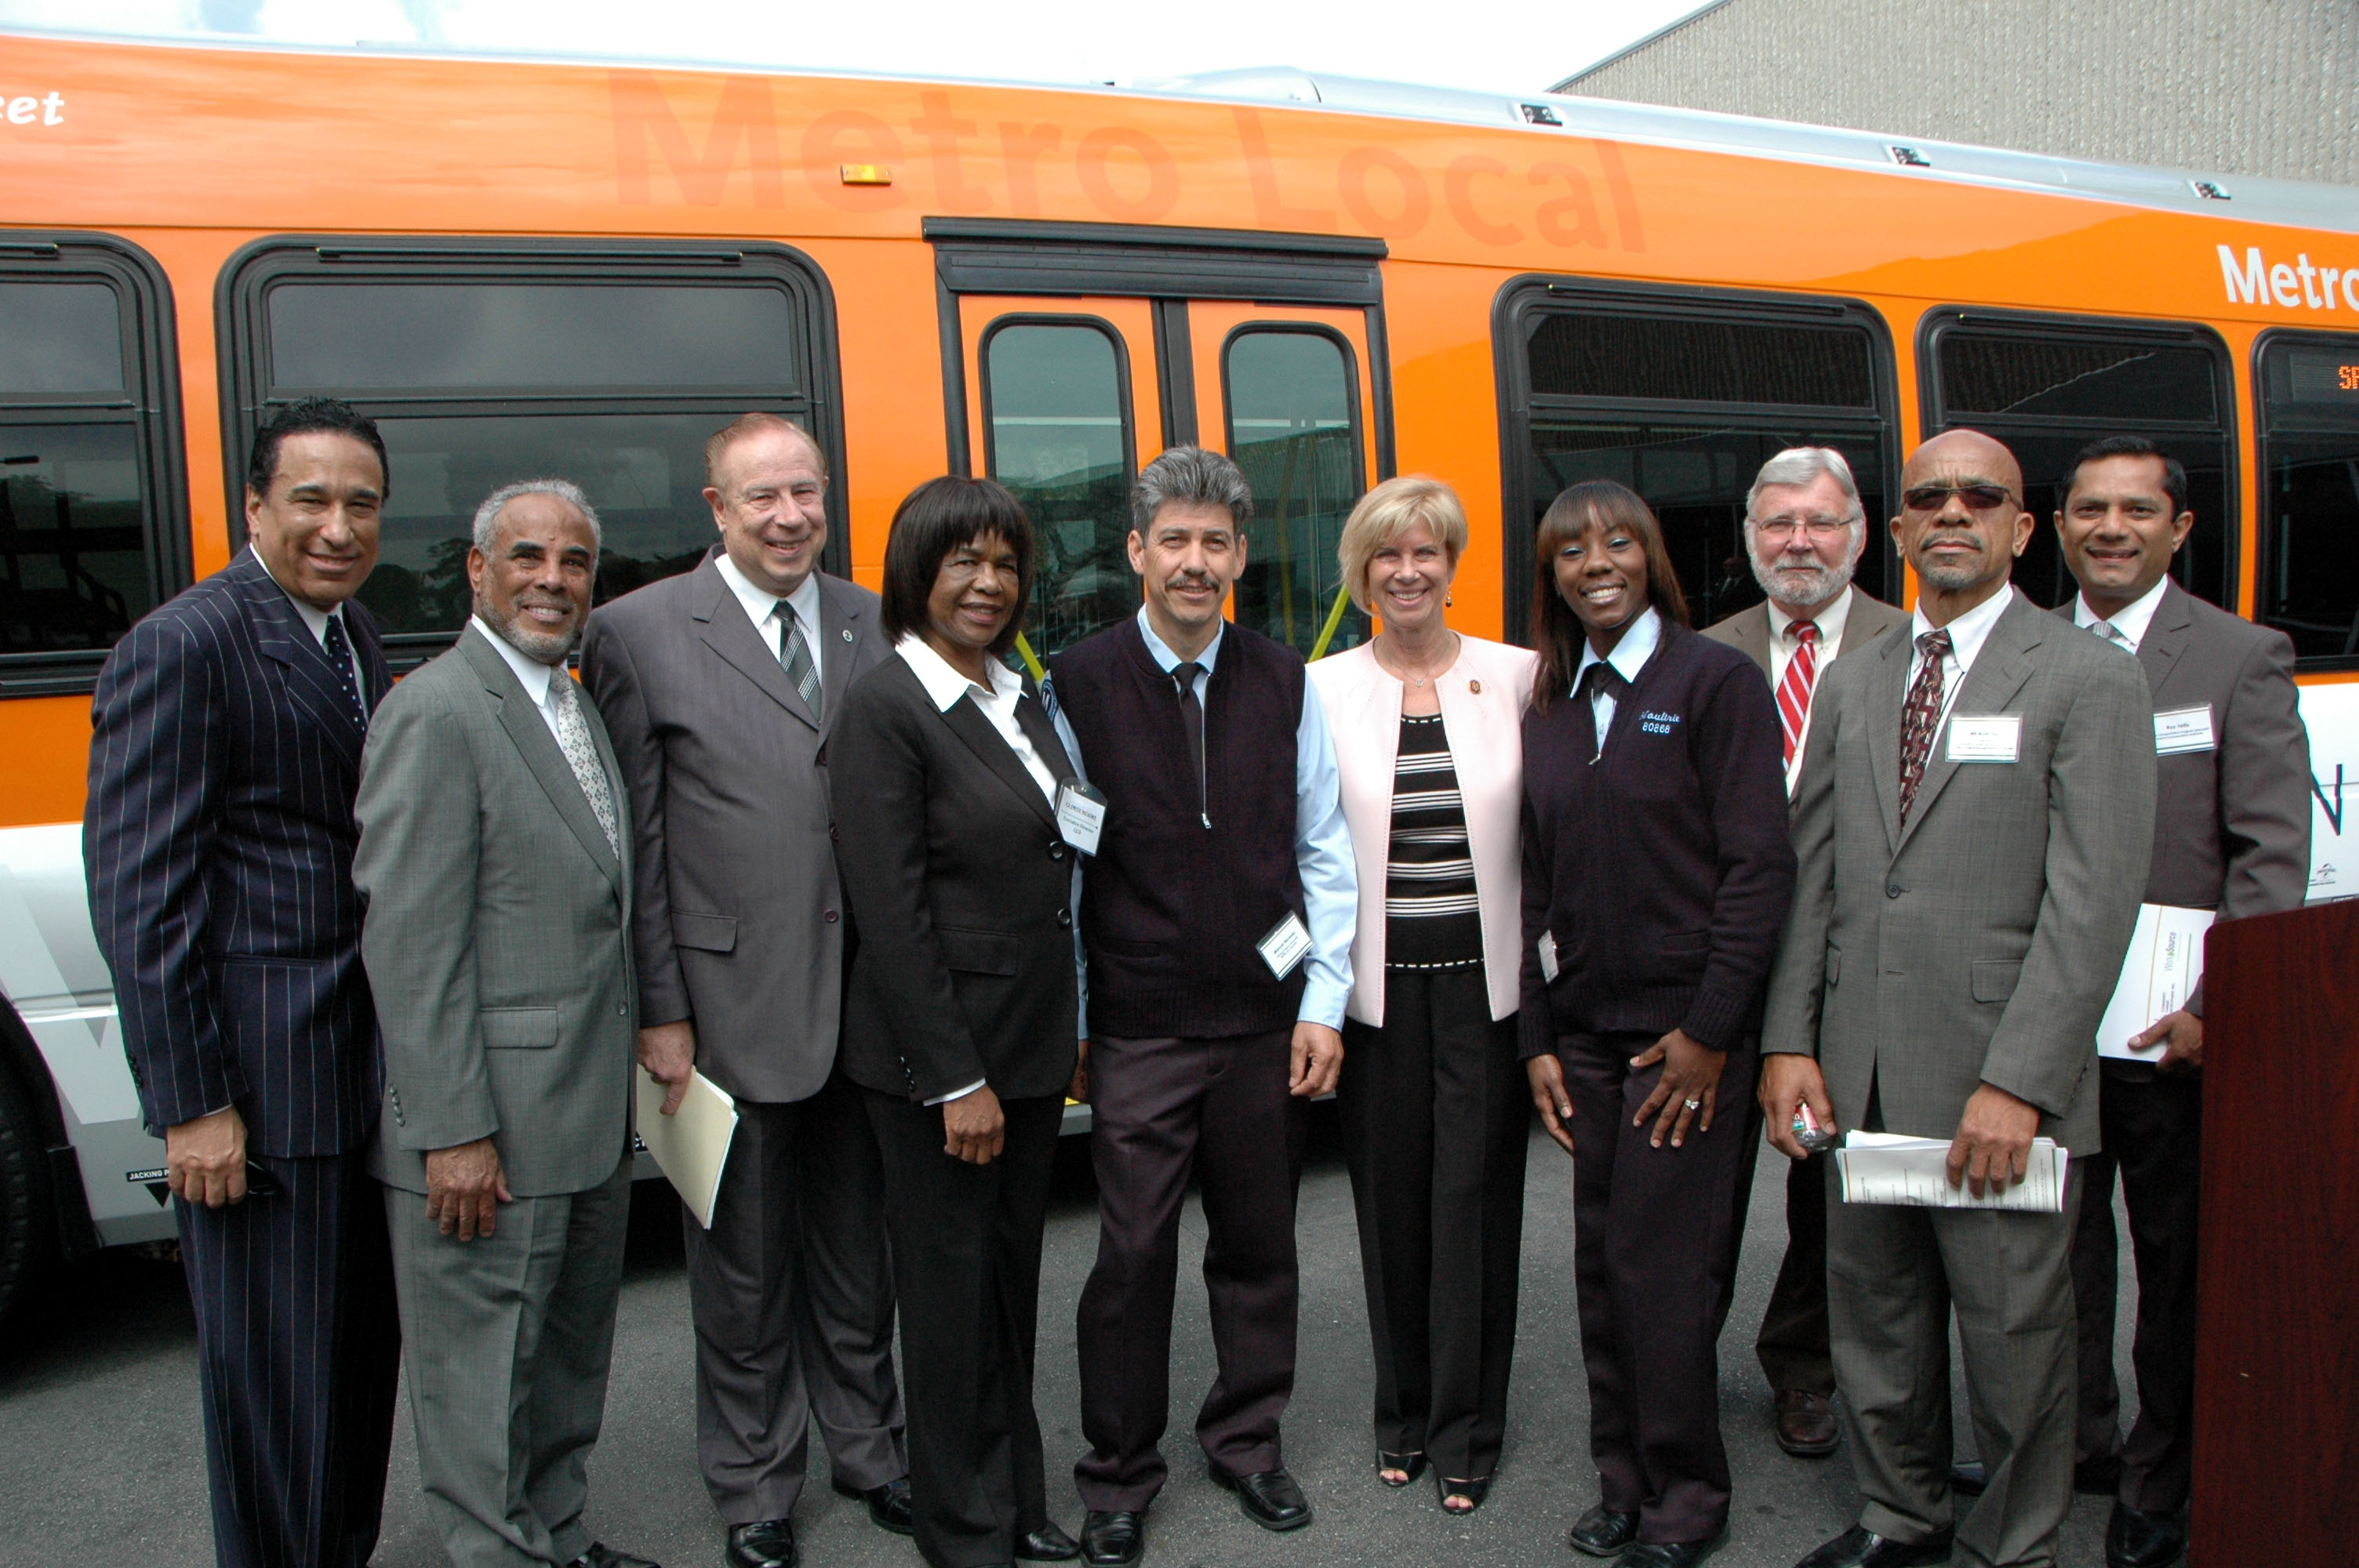 Rep. Janice Hahn (center) and local officials, Metro bus operators and Metro CEO Art Leahy at this morning's event. Photo by Luiz Inzunza/Metro.